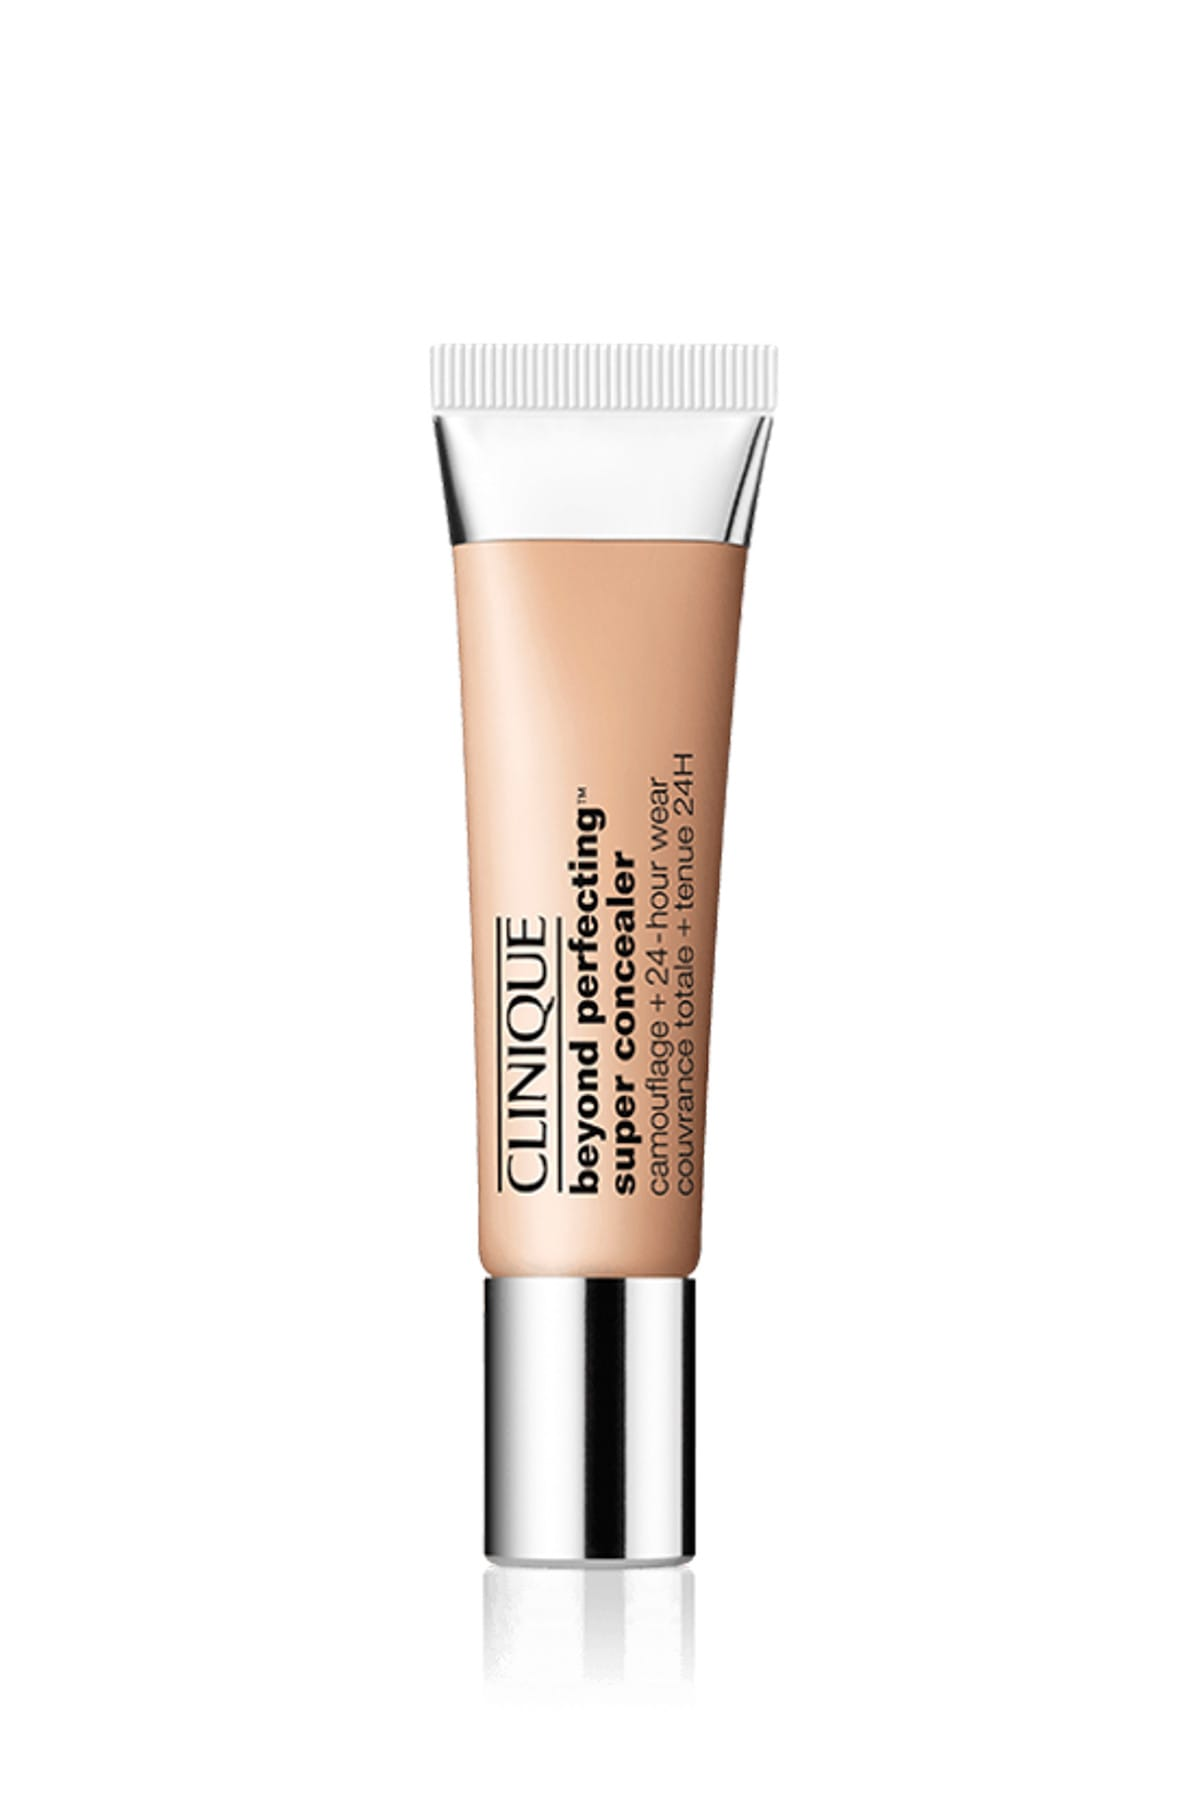 Clinique Kapatıcı - Beyond Perfecting Super Concealer Camouflage Moderately Fair 10  020714880880 1